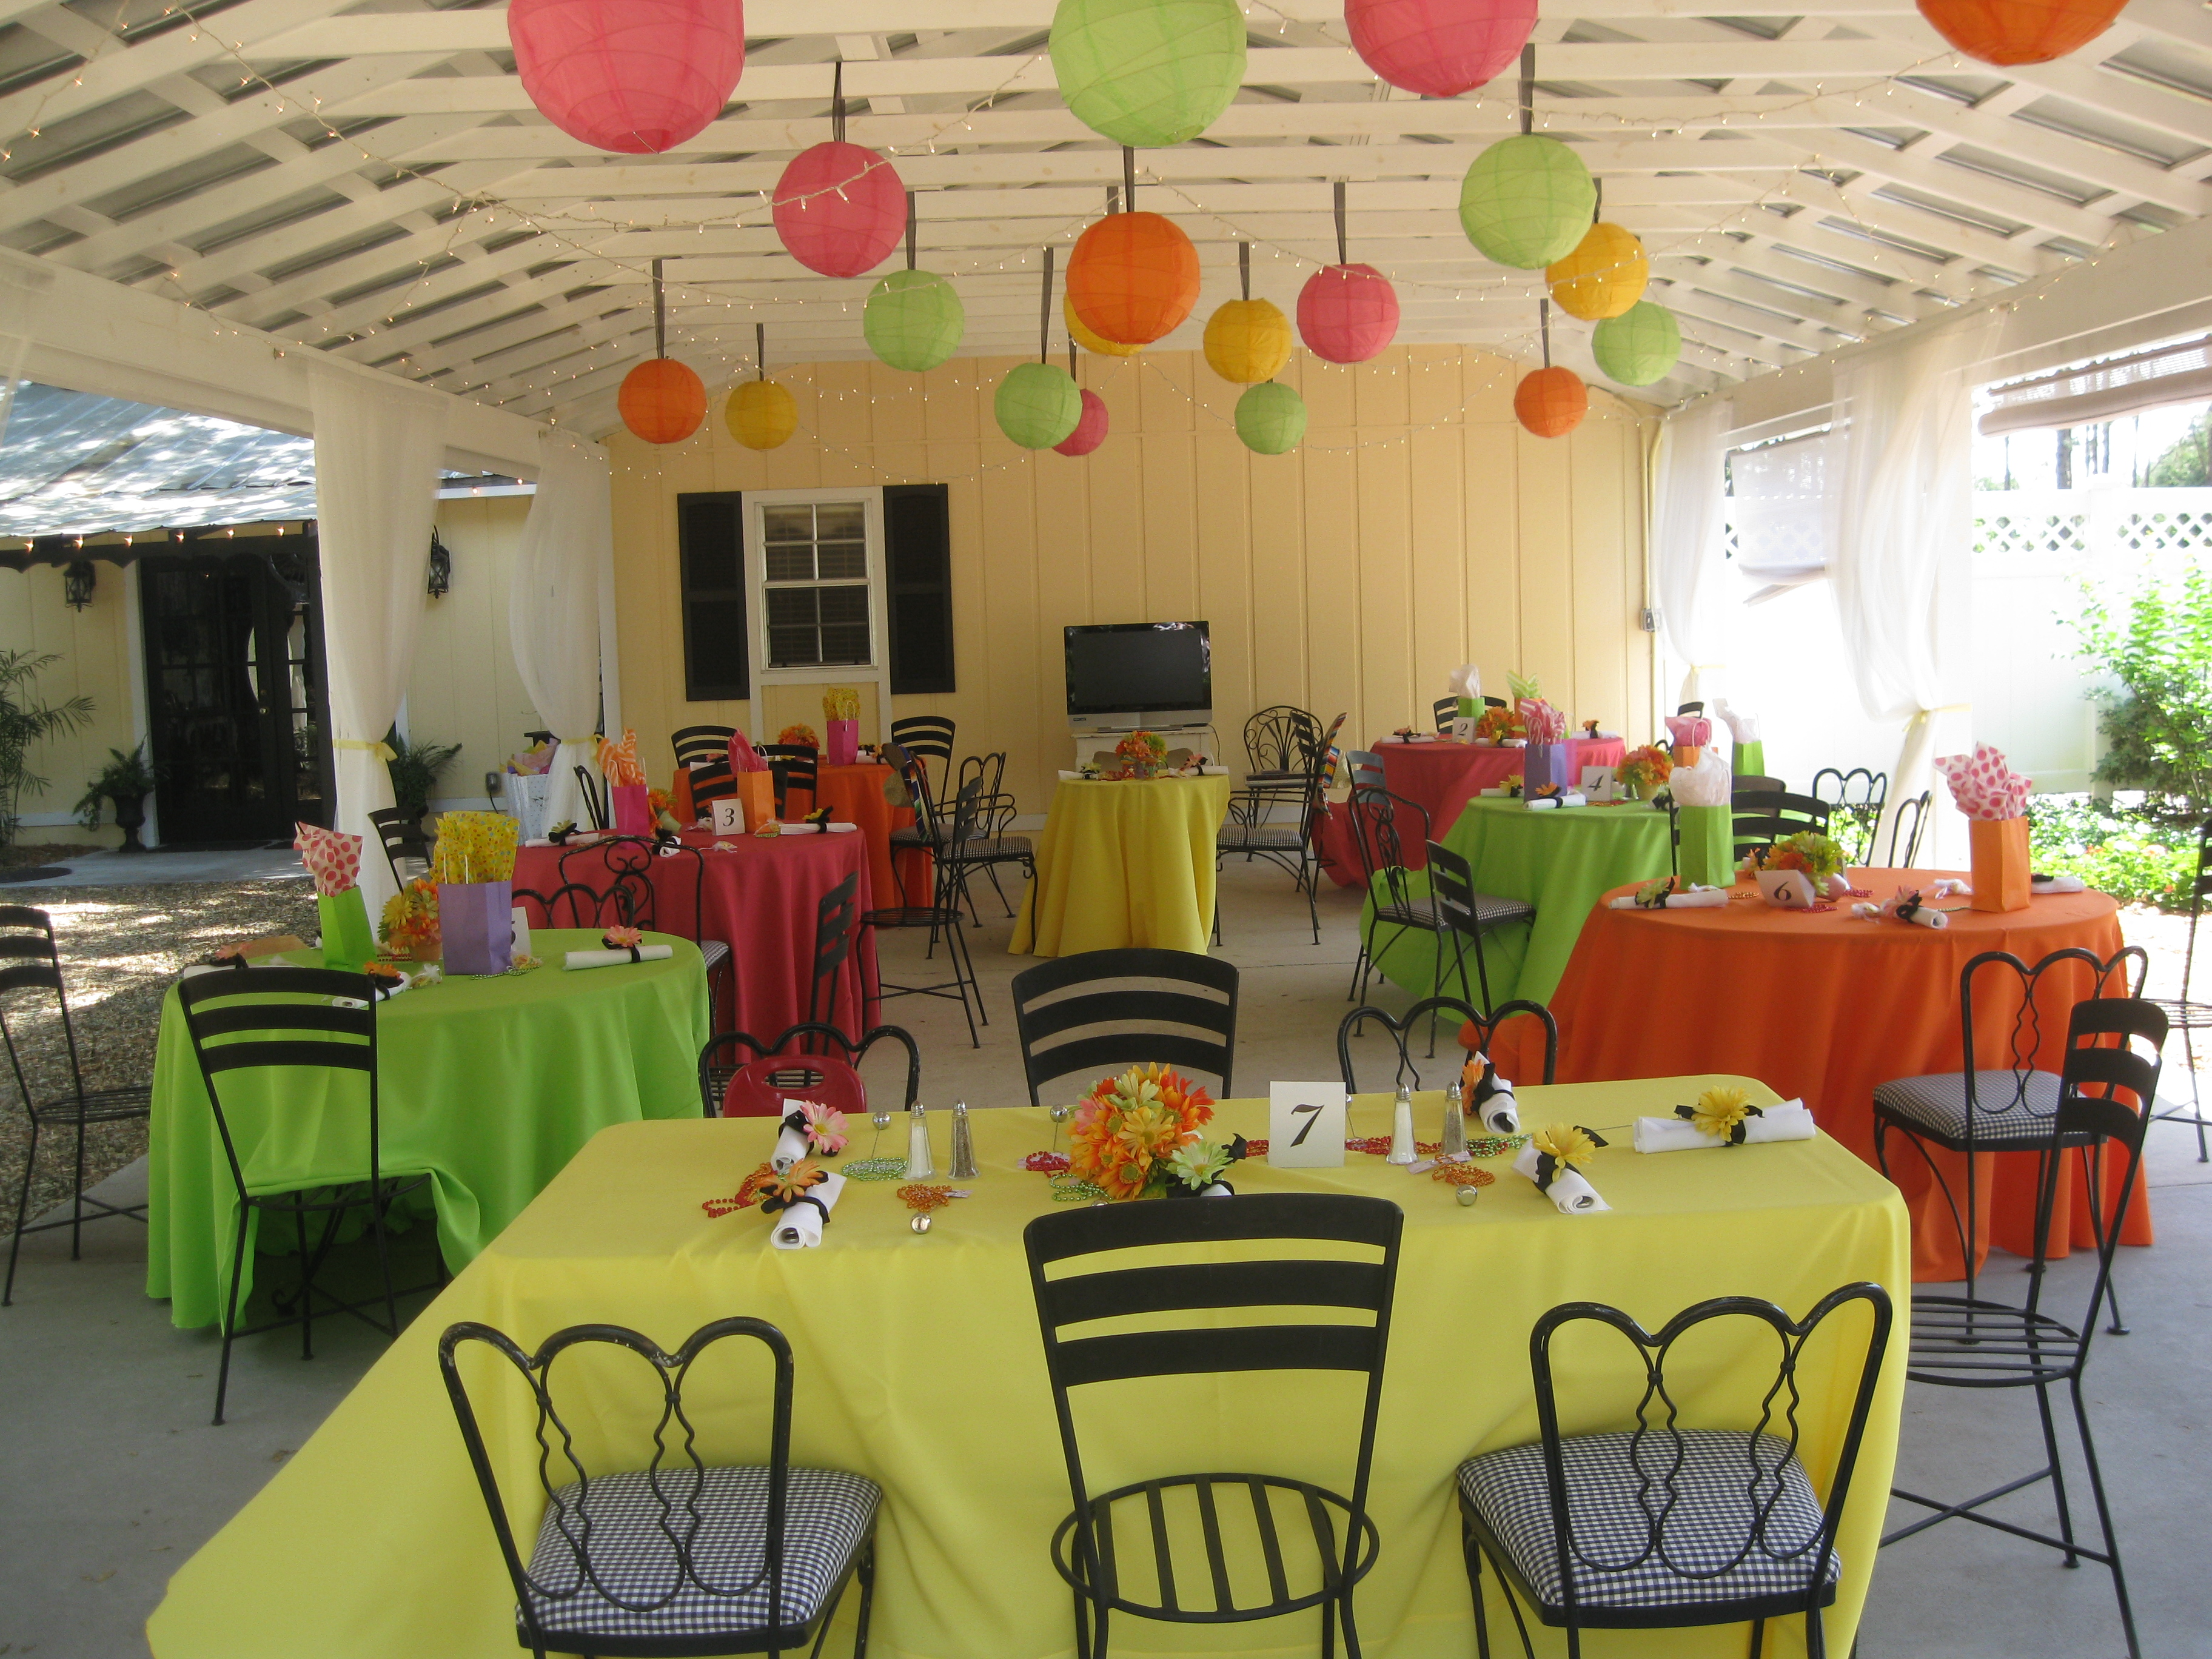 Colorful Tablecloths No Overlay Mexican Themed Fiesta